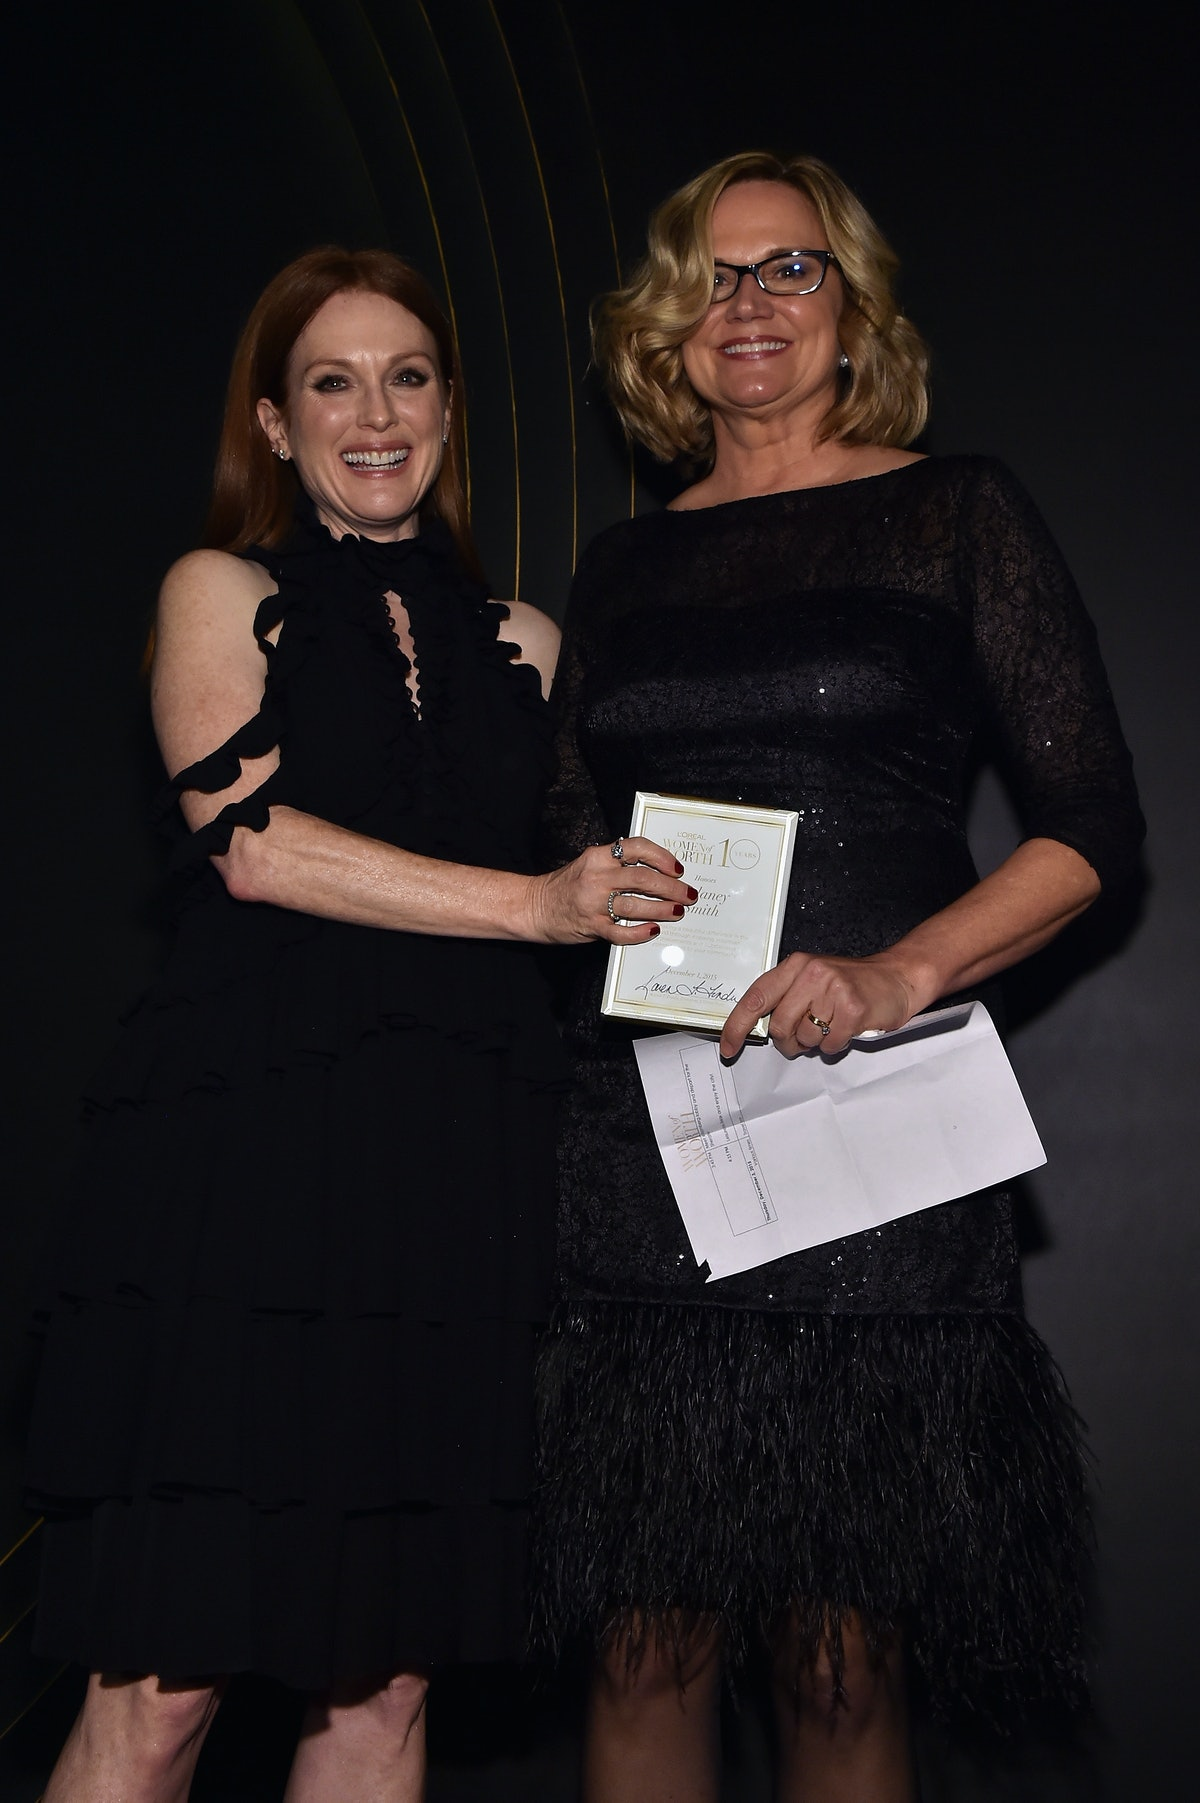 Julianne Moore and Melaney Smith